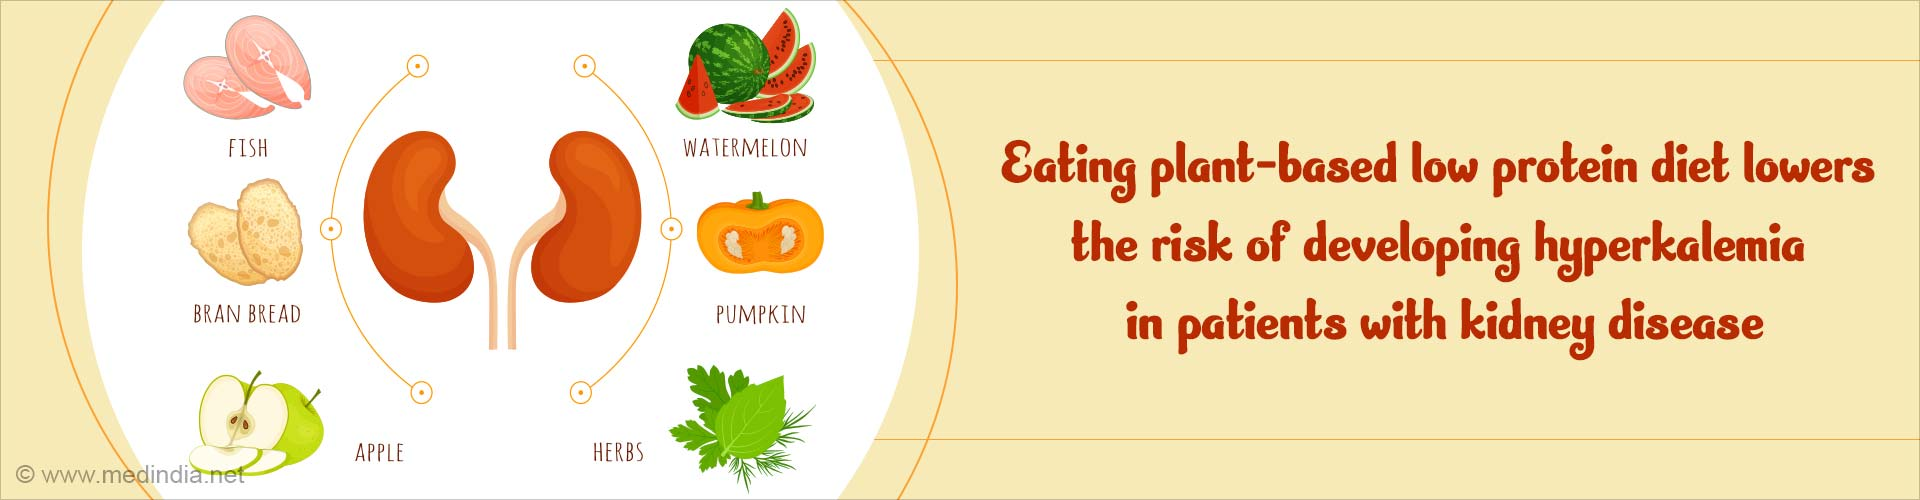 Plant-Based Diet is Not Linked to Hyperkalemia in CKD Patients